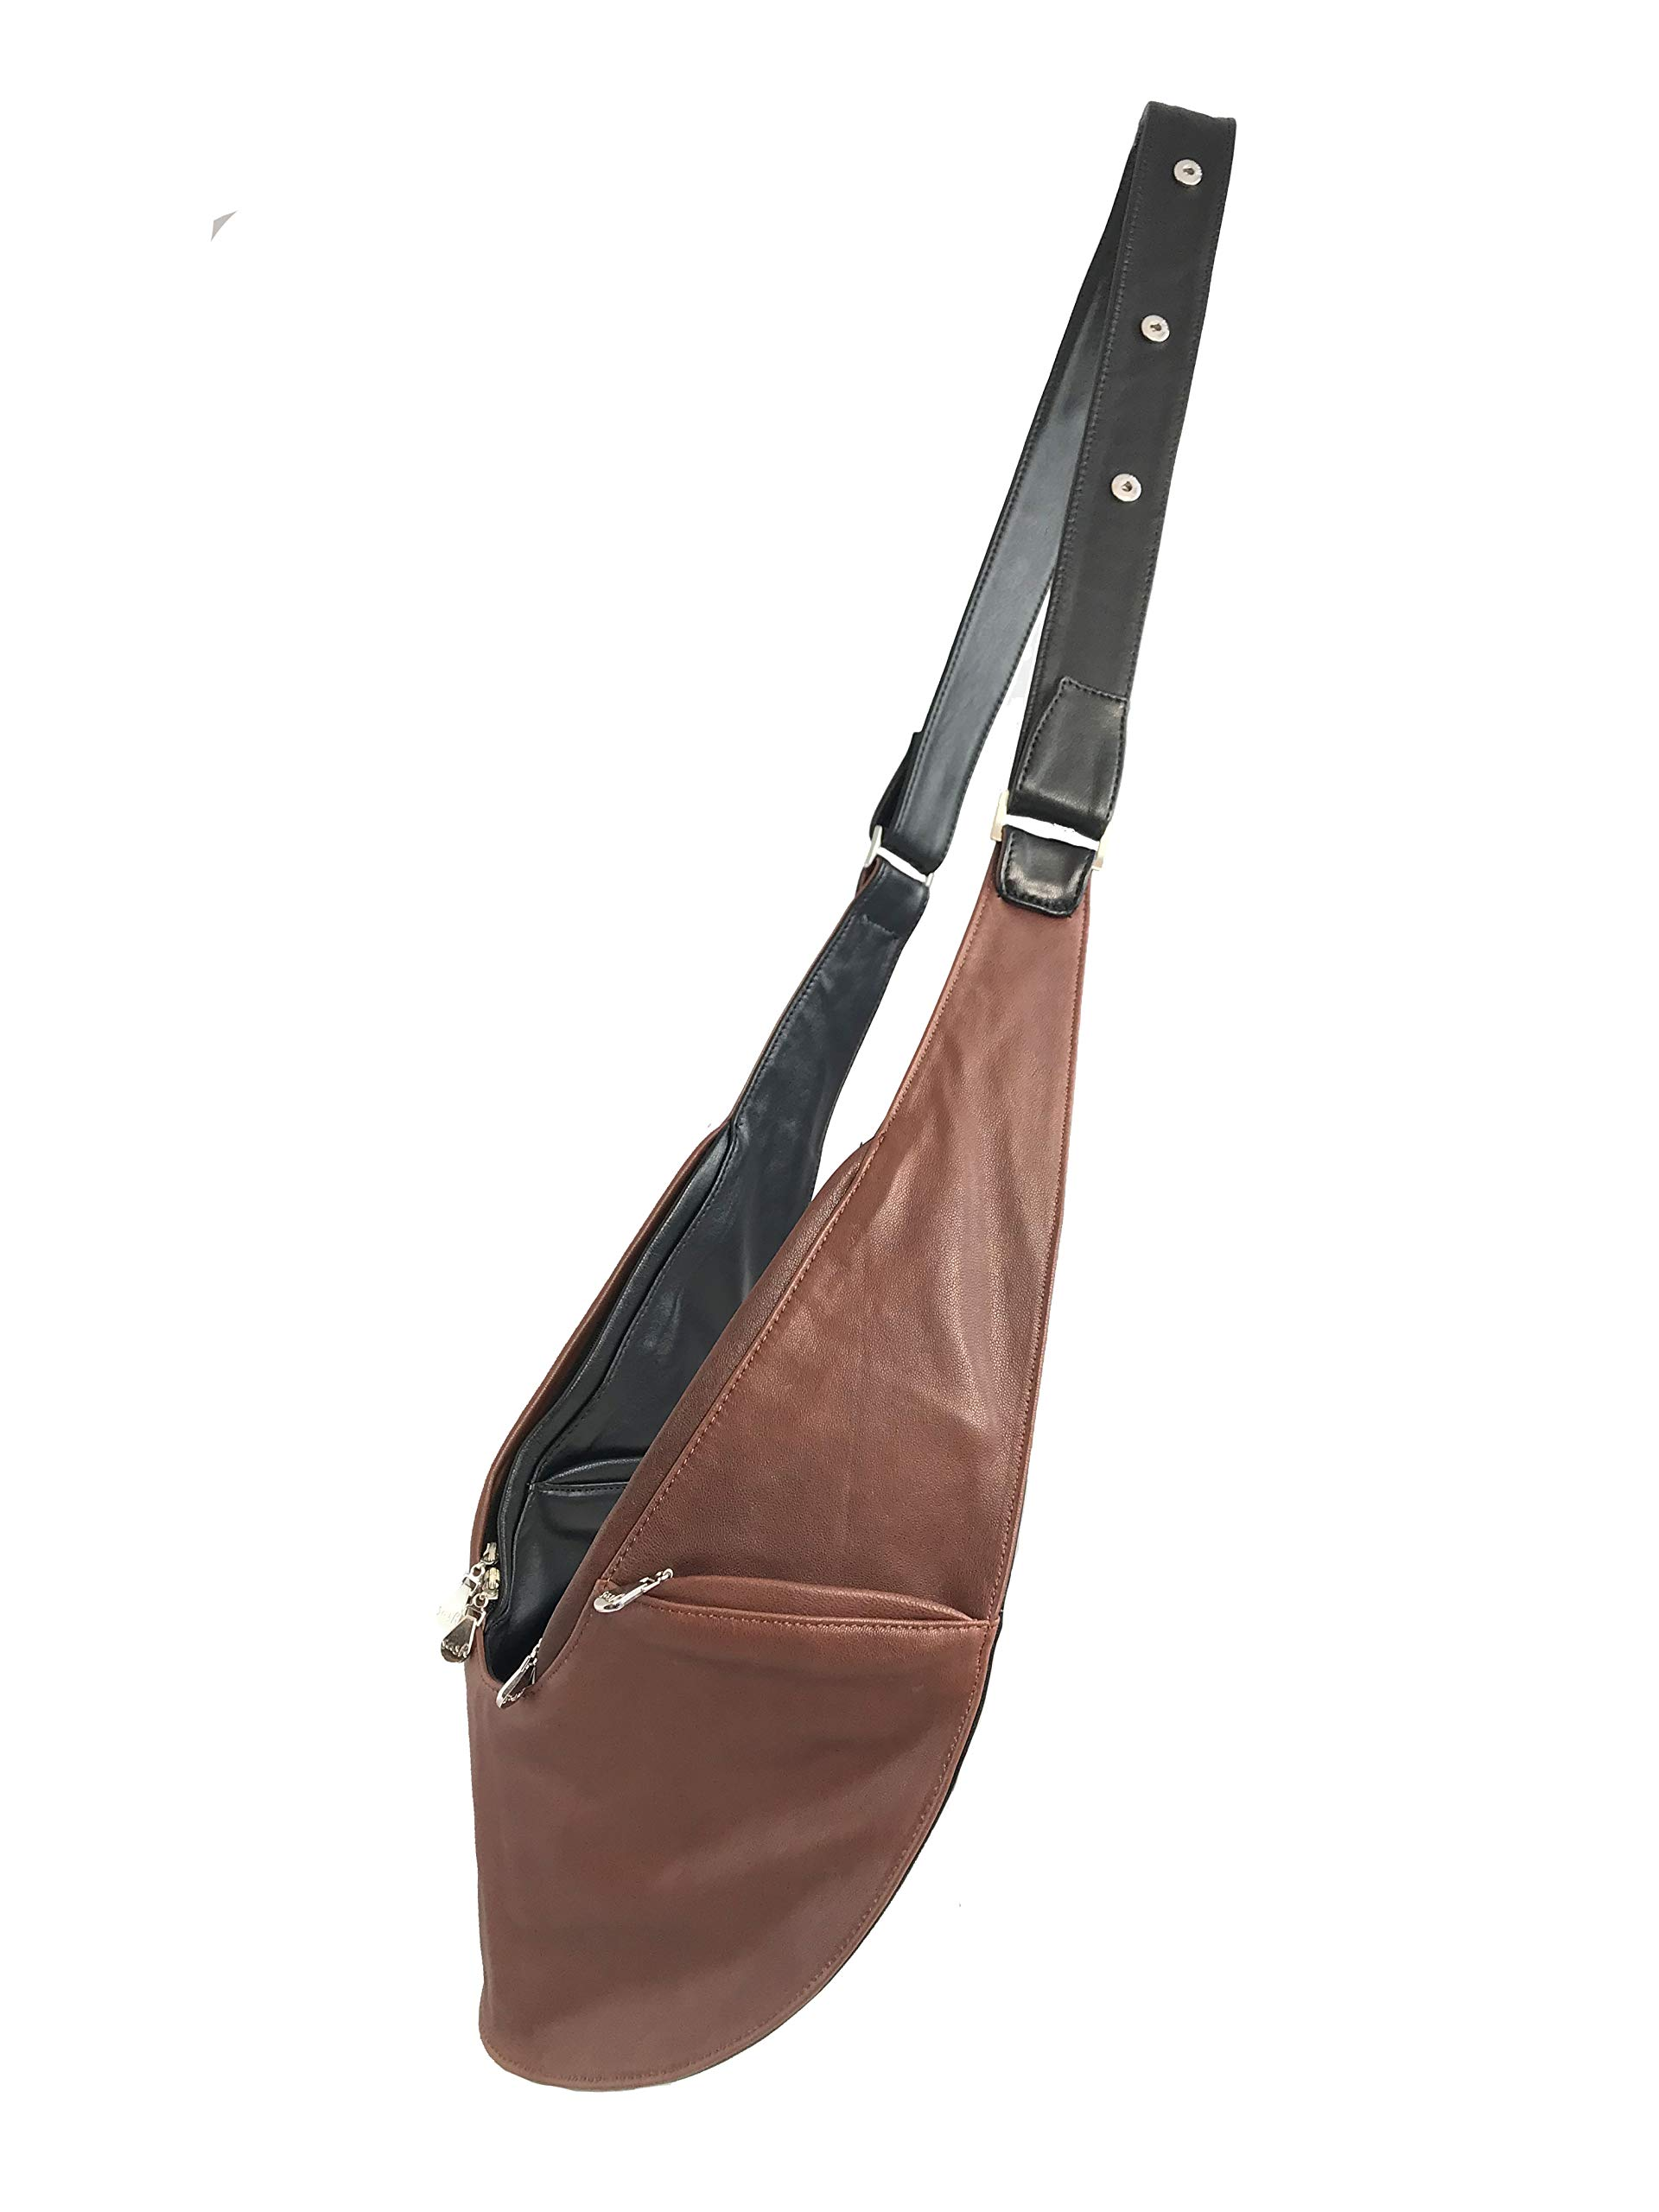 Womens Crossbody Bag by SASH - Over The Shoulder Cross Body Purse (Black/Brown Genuine Leather)